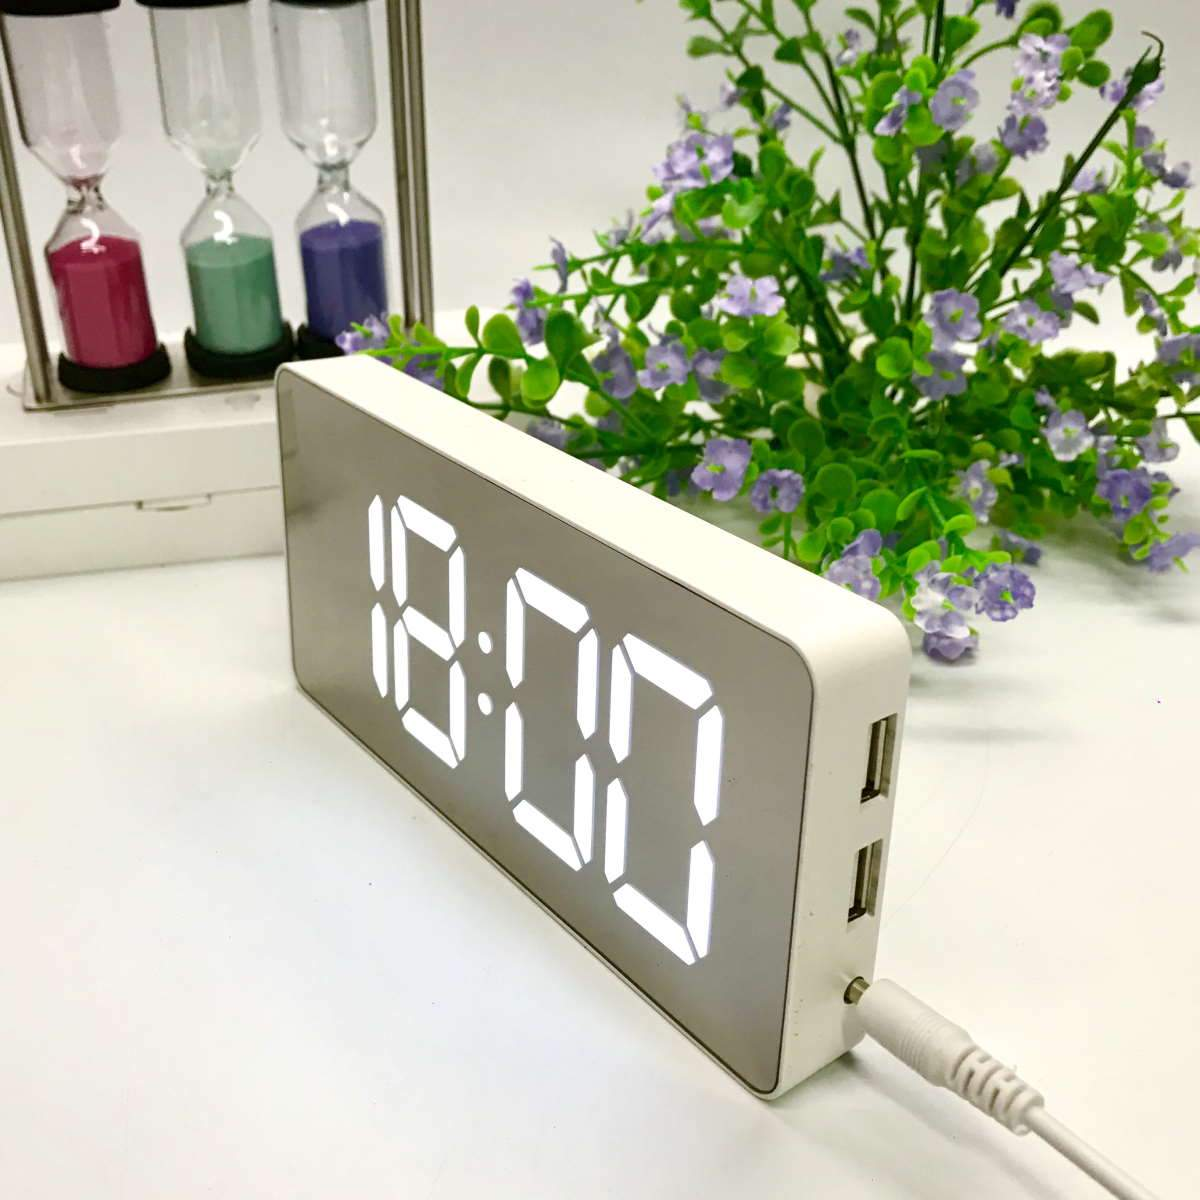 Checkmate Hector Mirror Face LED USB Charging Alarm Clock White 16cm VGW-3322-WHI 3